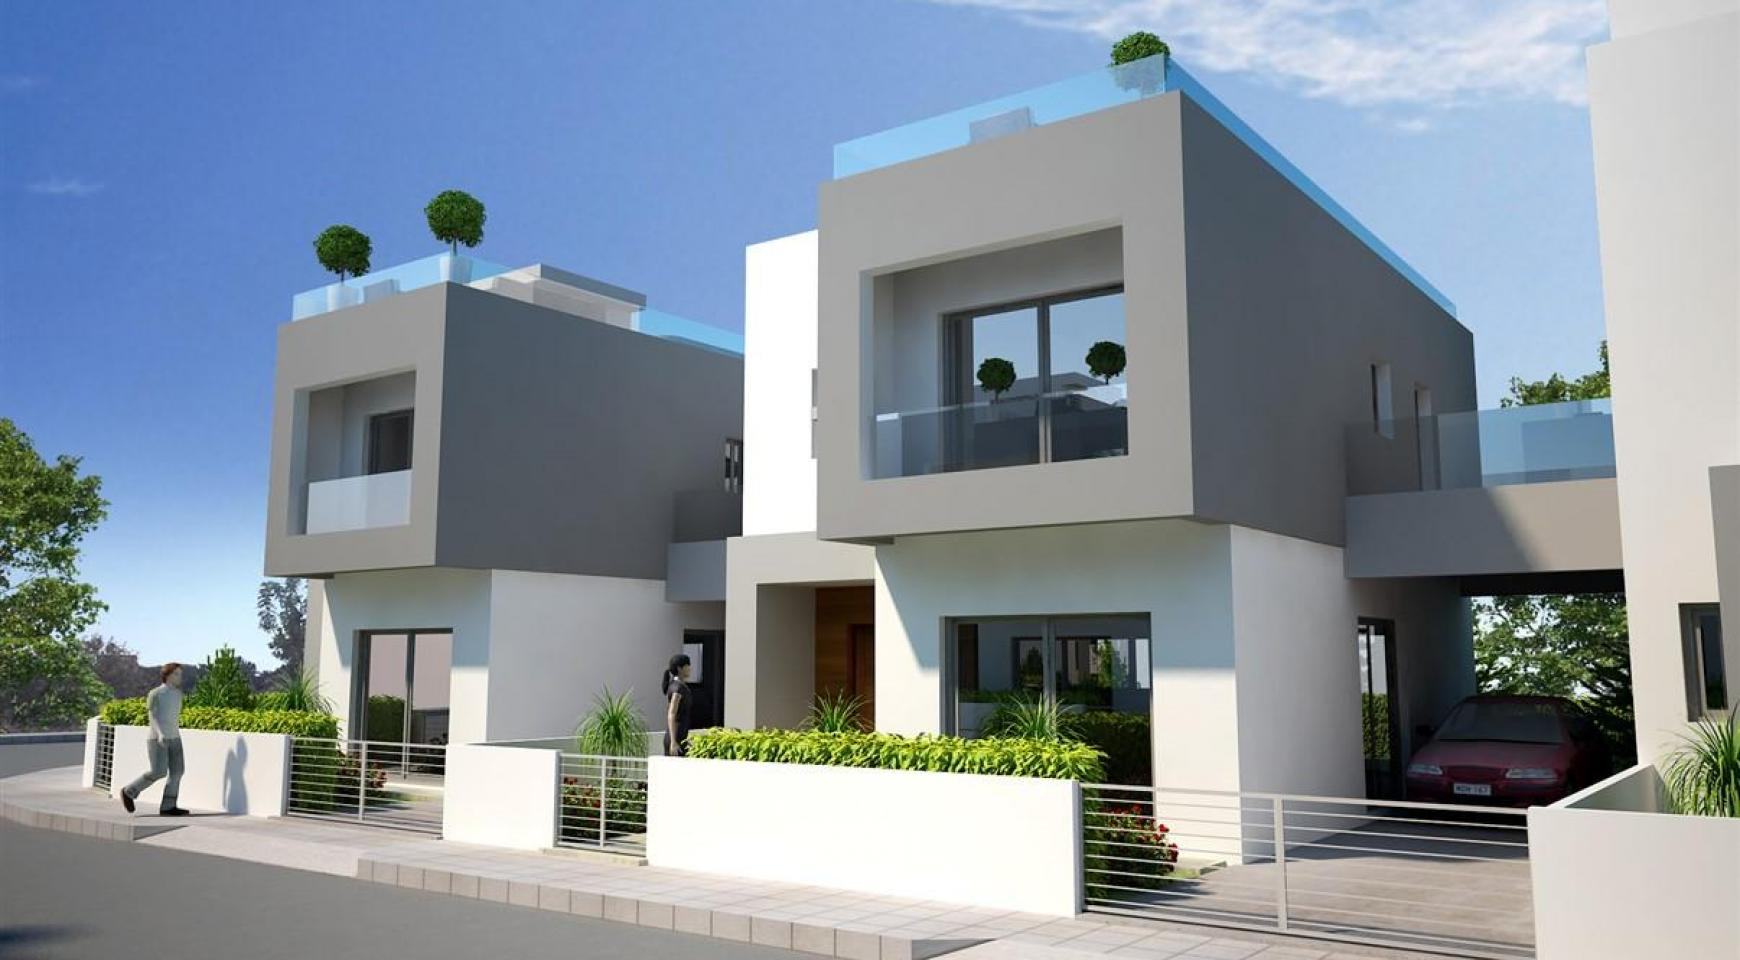 3 Bedroom Villa in a New Project - 33